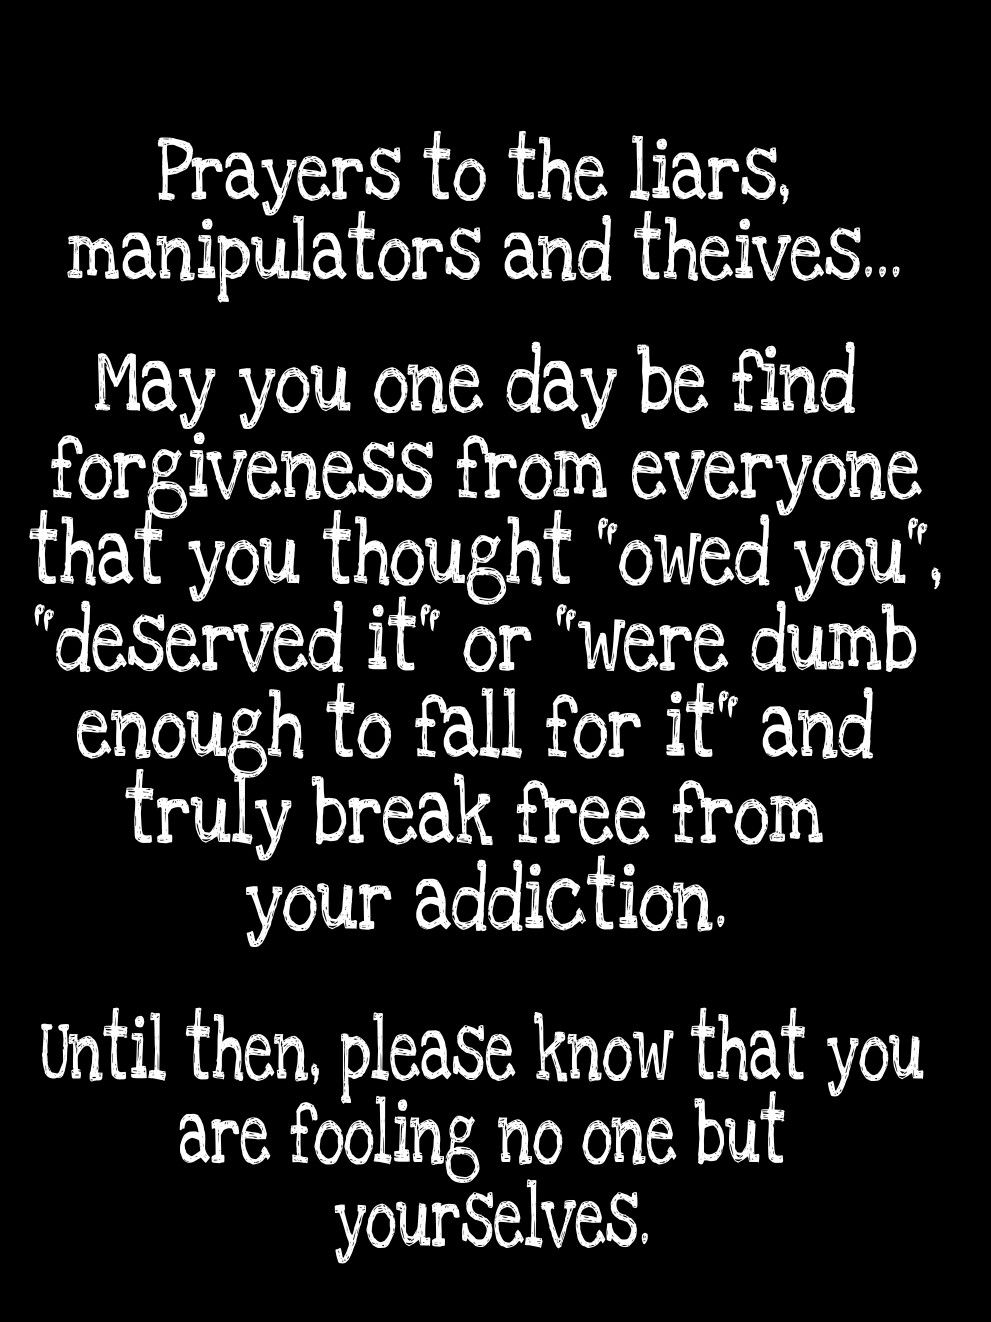 Manipulators Liars Theives Users Who Think They Are Pulling The Wool Over You Eyes When In Reality You Are Just Watching The Show Words Manipulation Liar